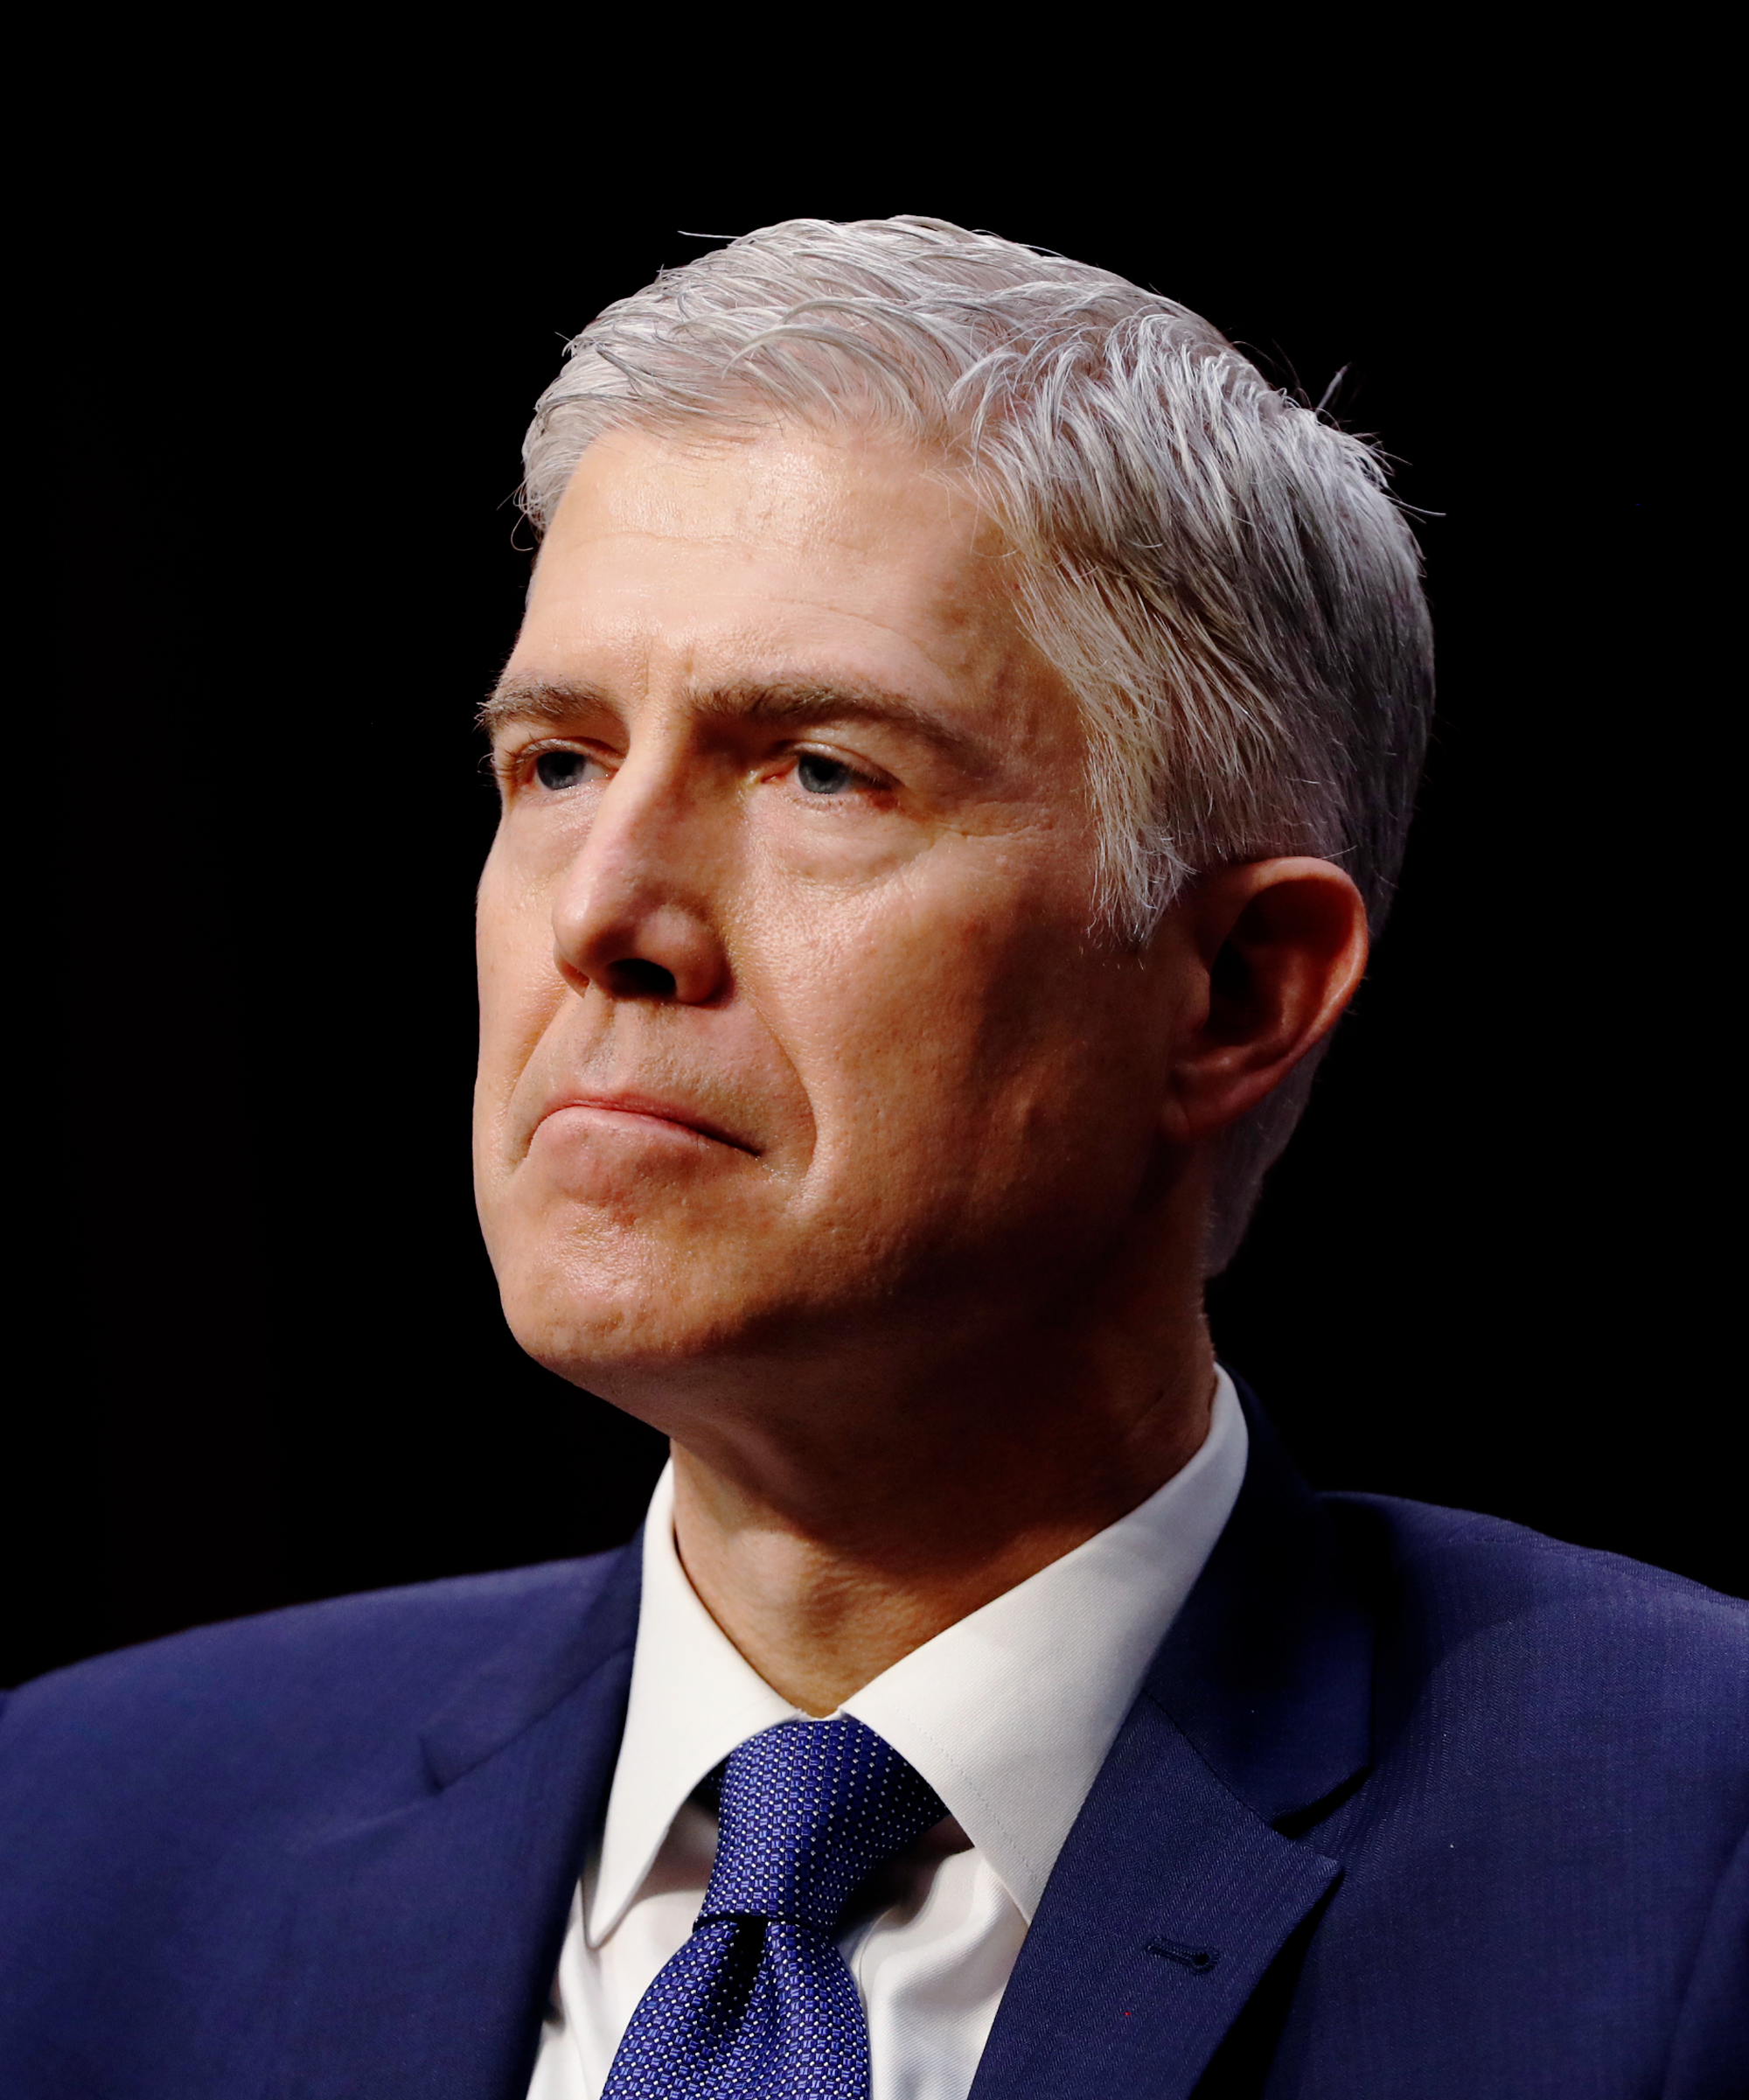 Gorsuch confirmed; Senate approves Trump Supreme Court nominee 54-45